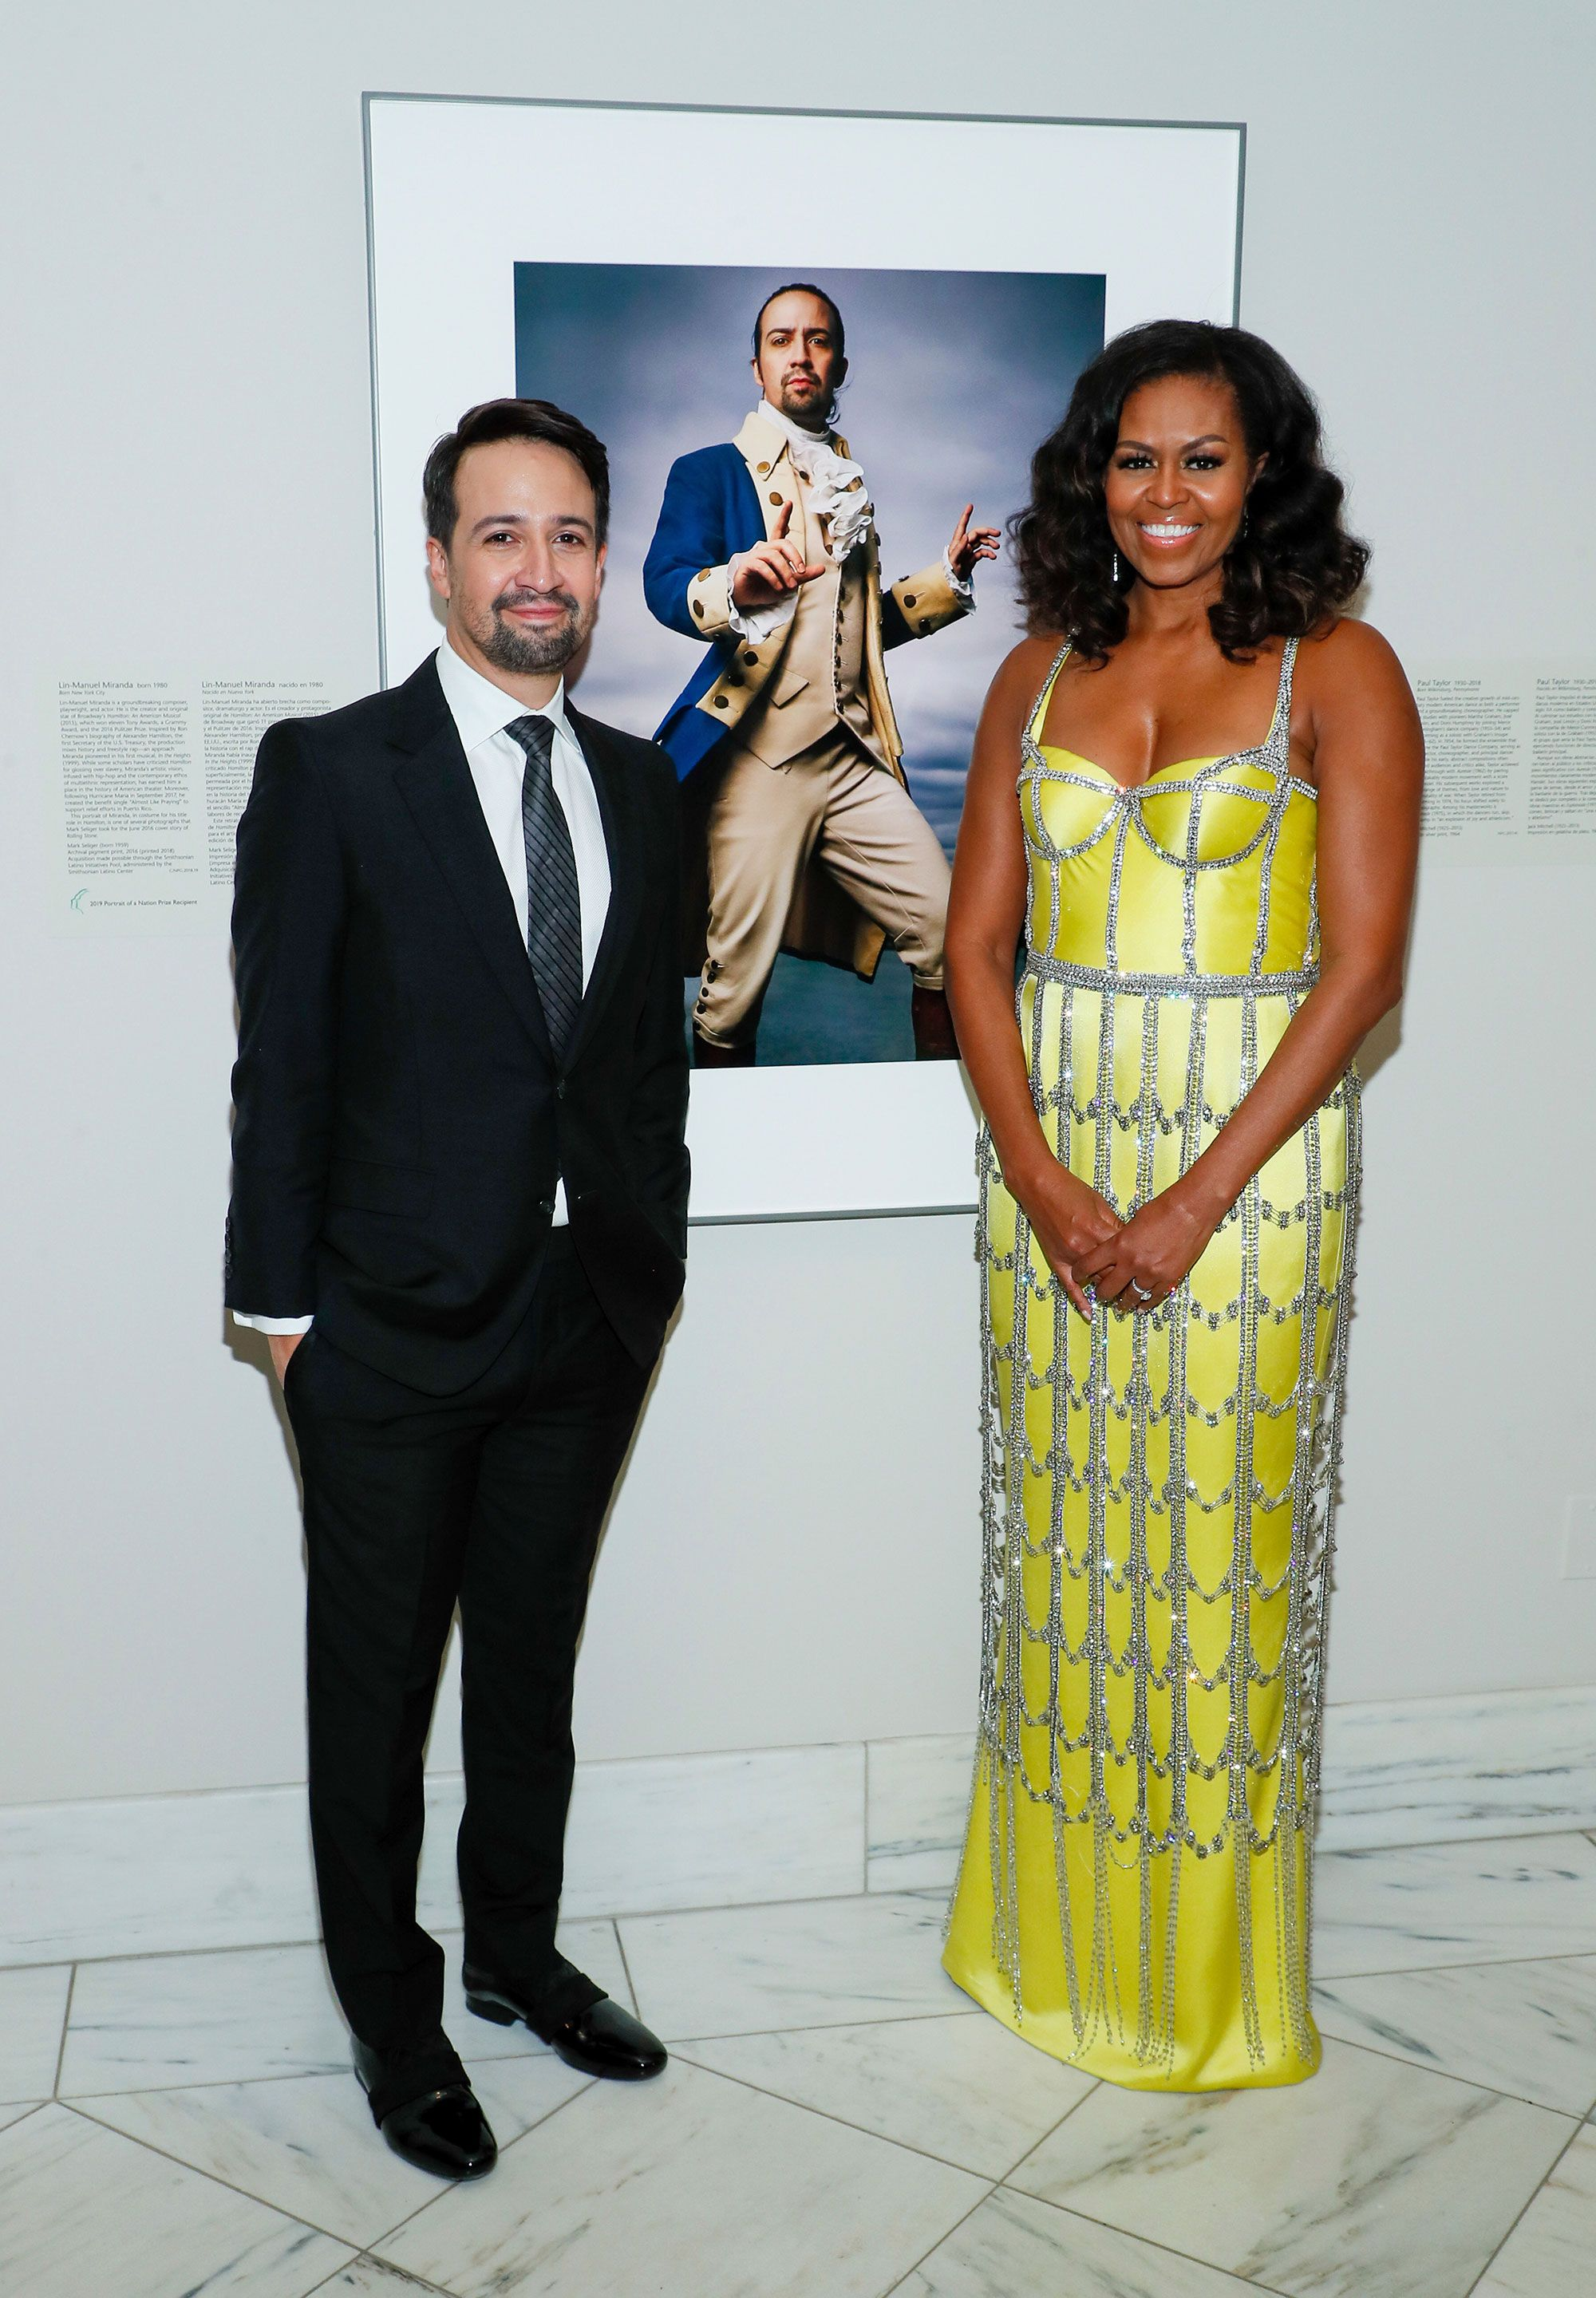 Michelle Obama Wears A Yellow Corseted Schiaparelli Gown At National Portrait Gallery Gala,Barefoot Contessa Pioneer Woman Meatloaf Recipe